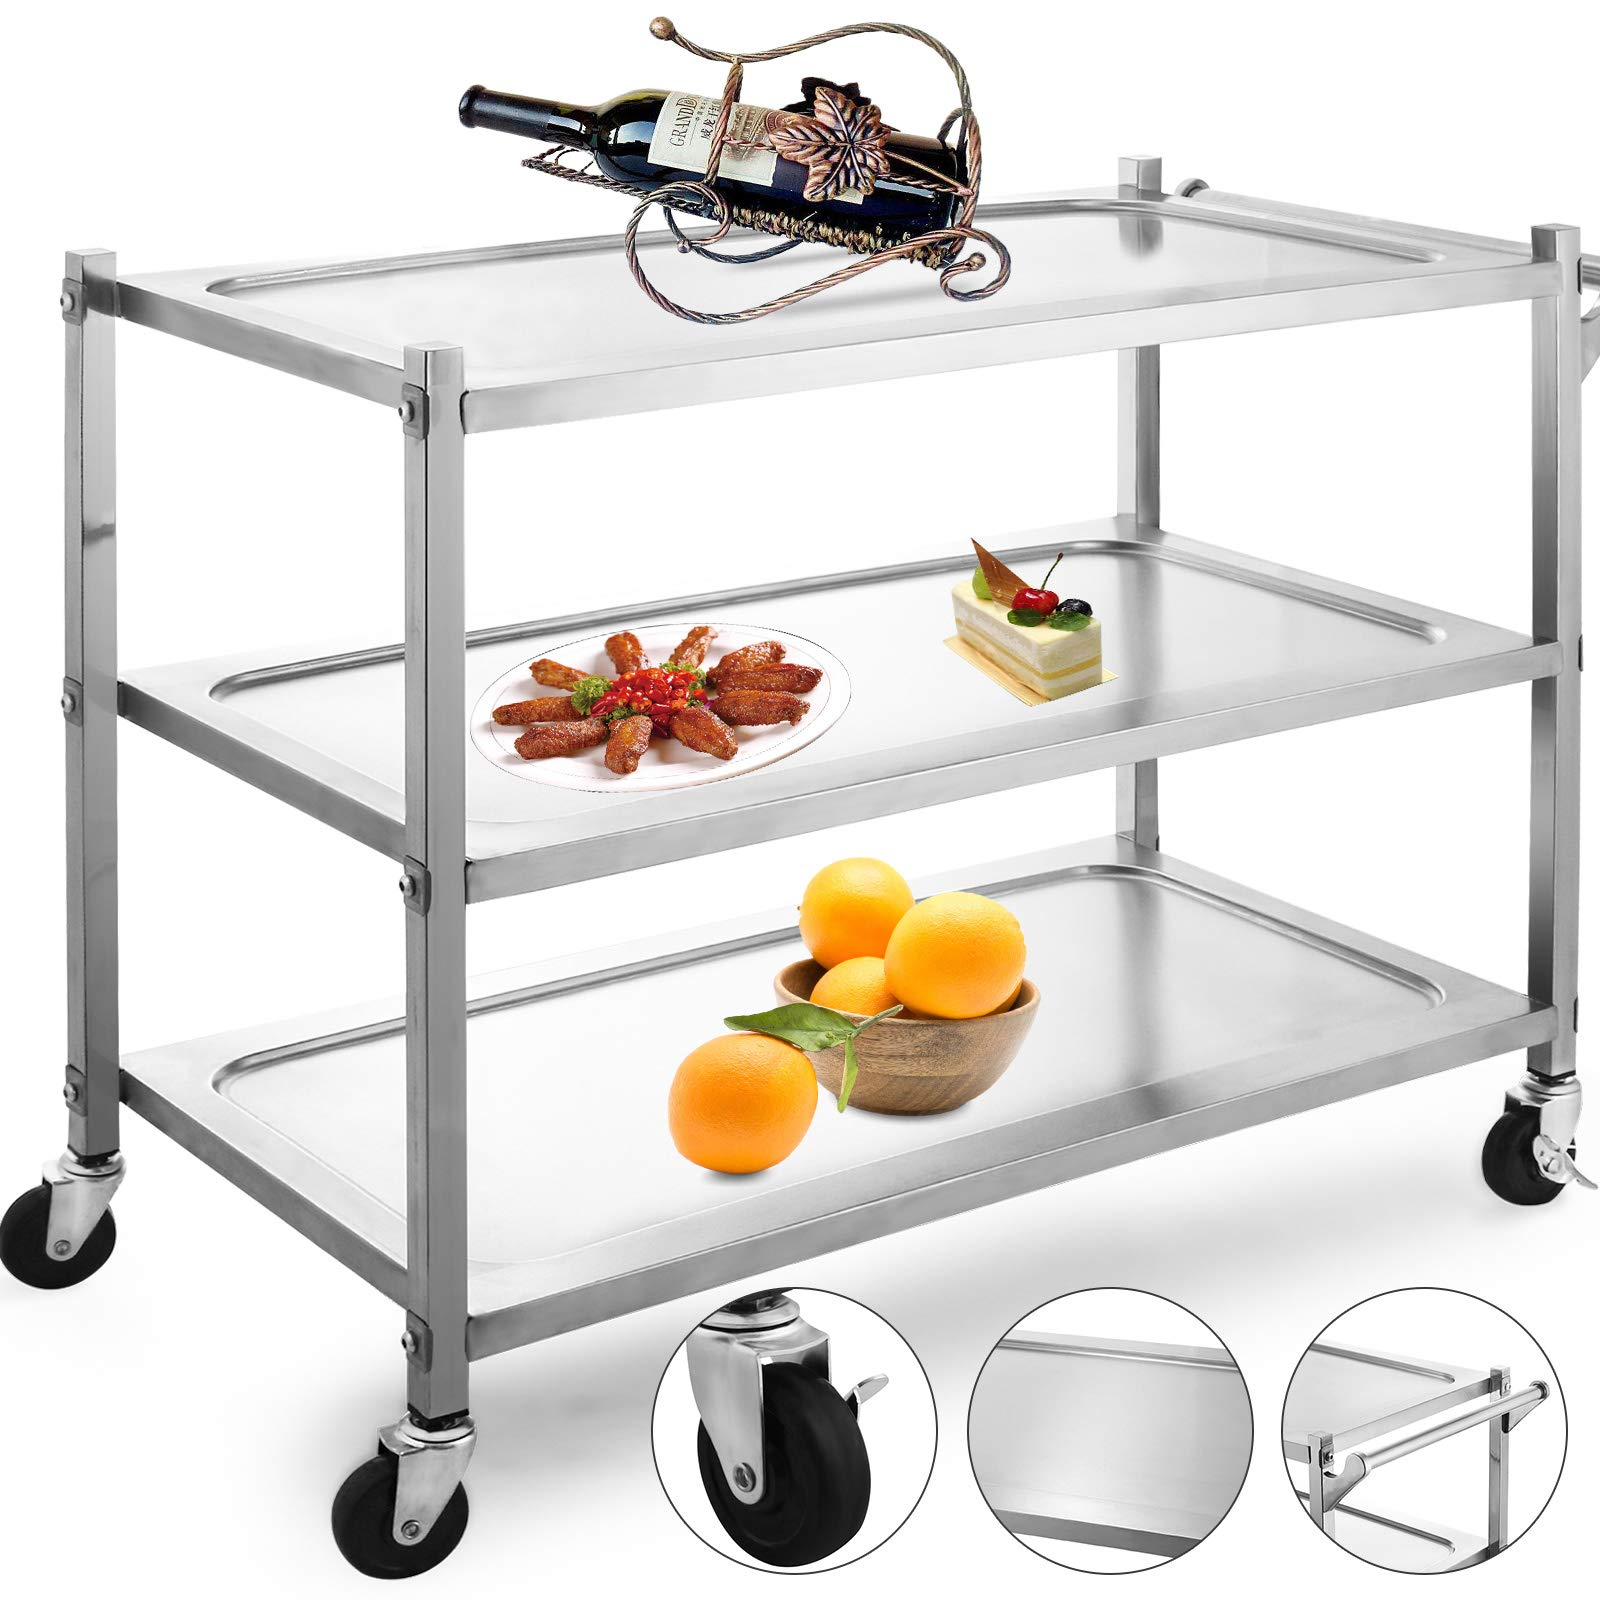 VBENLEM Utility Cart 3 Shelf Utility Cart on Wheels 330Lbs Stainless Steel Cart Commercial Bus Cart Kitchen Food Catering Rolling Dolly with Single Handle